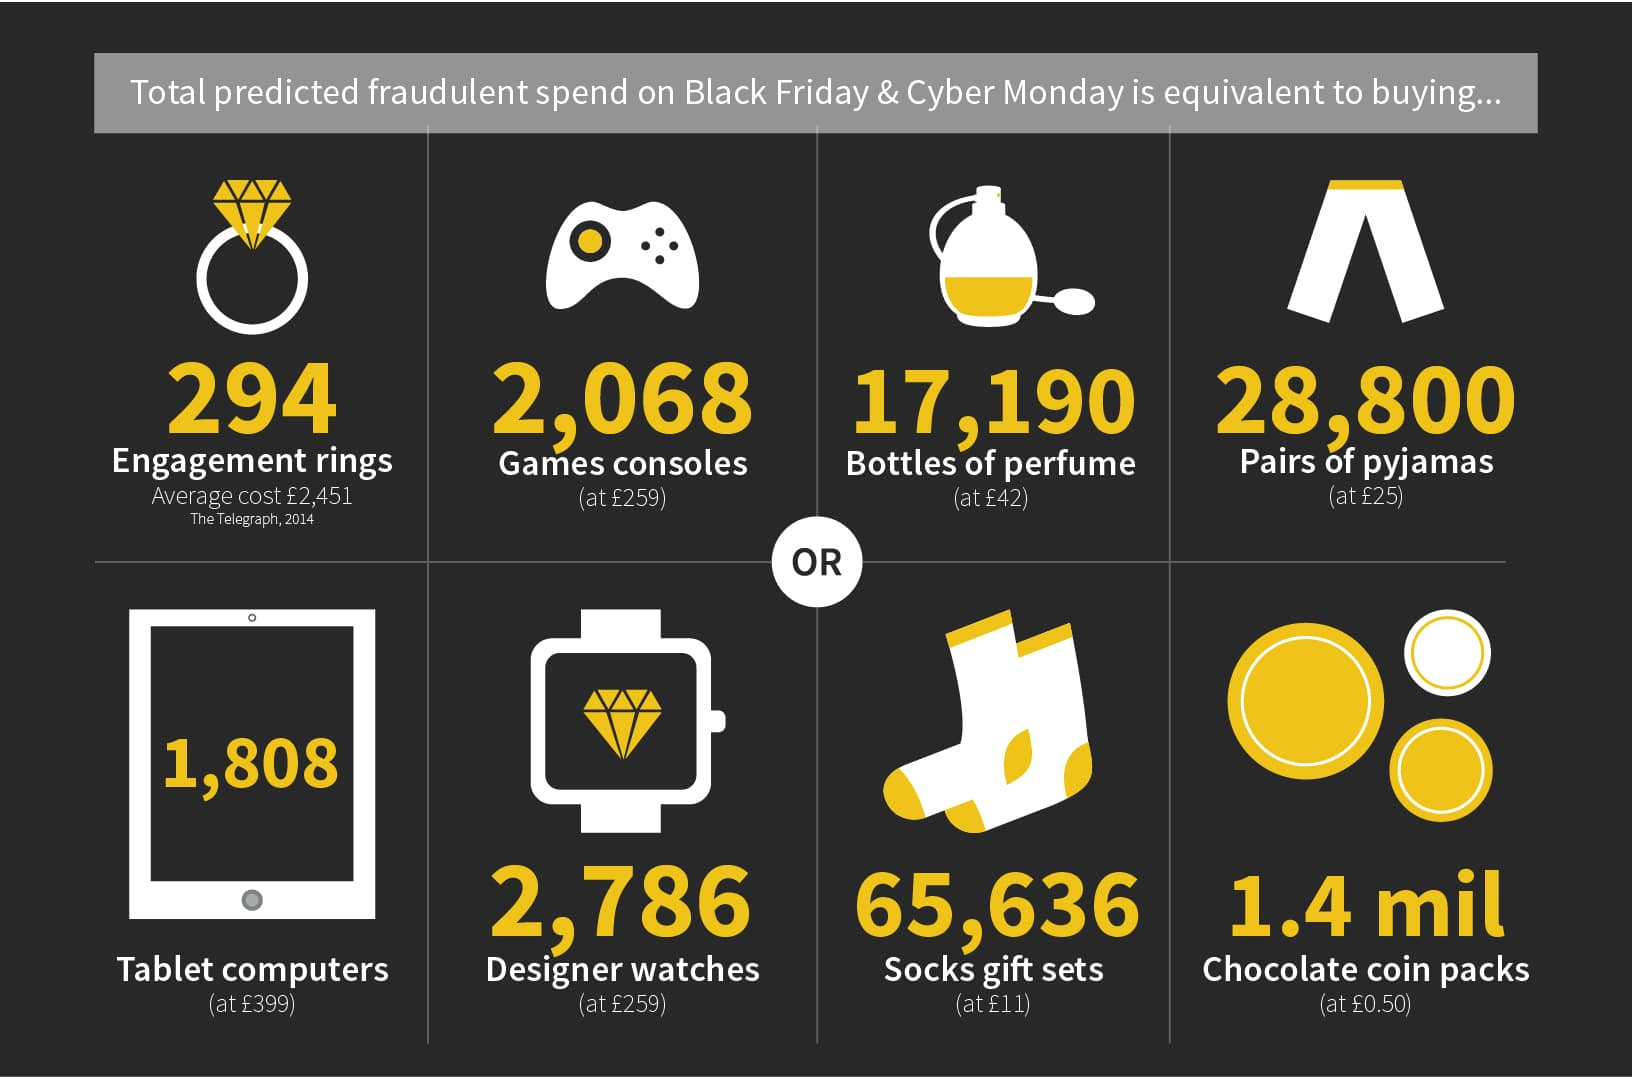 Millions In Card Fraud Predicted On Black Friday And Cyber Monday